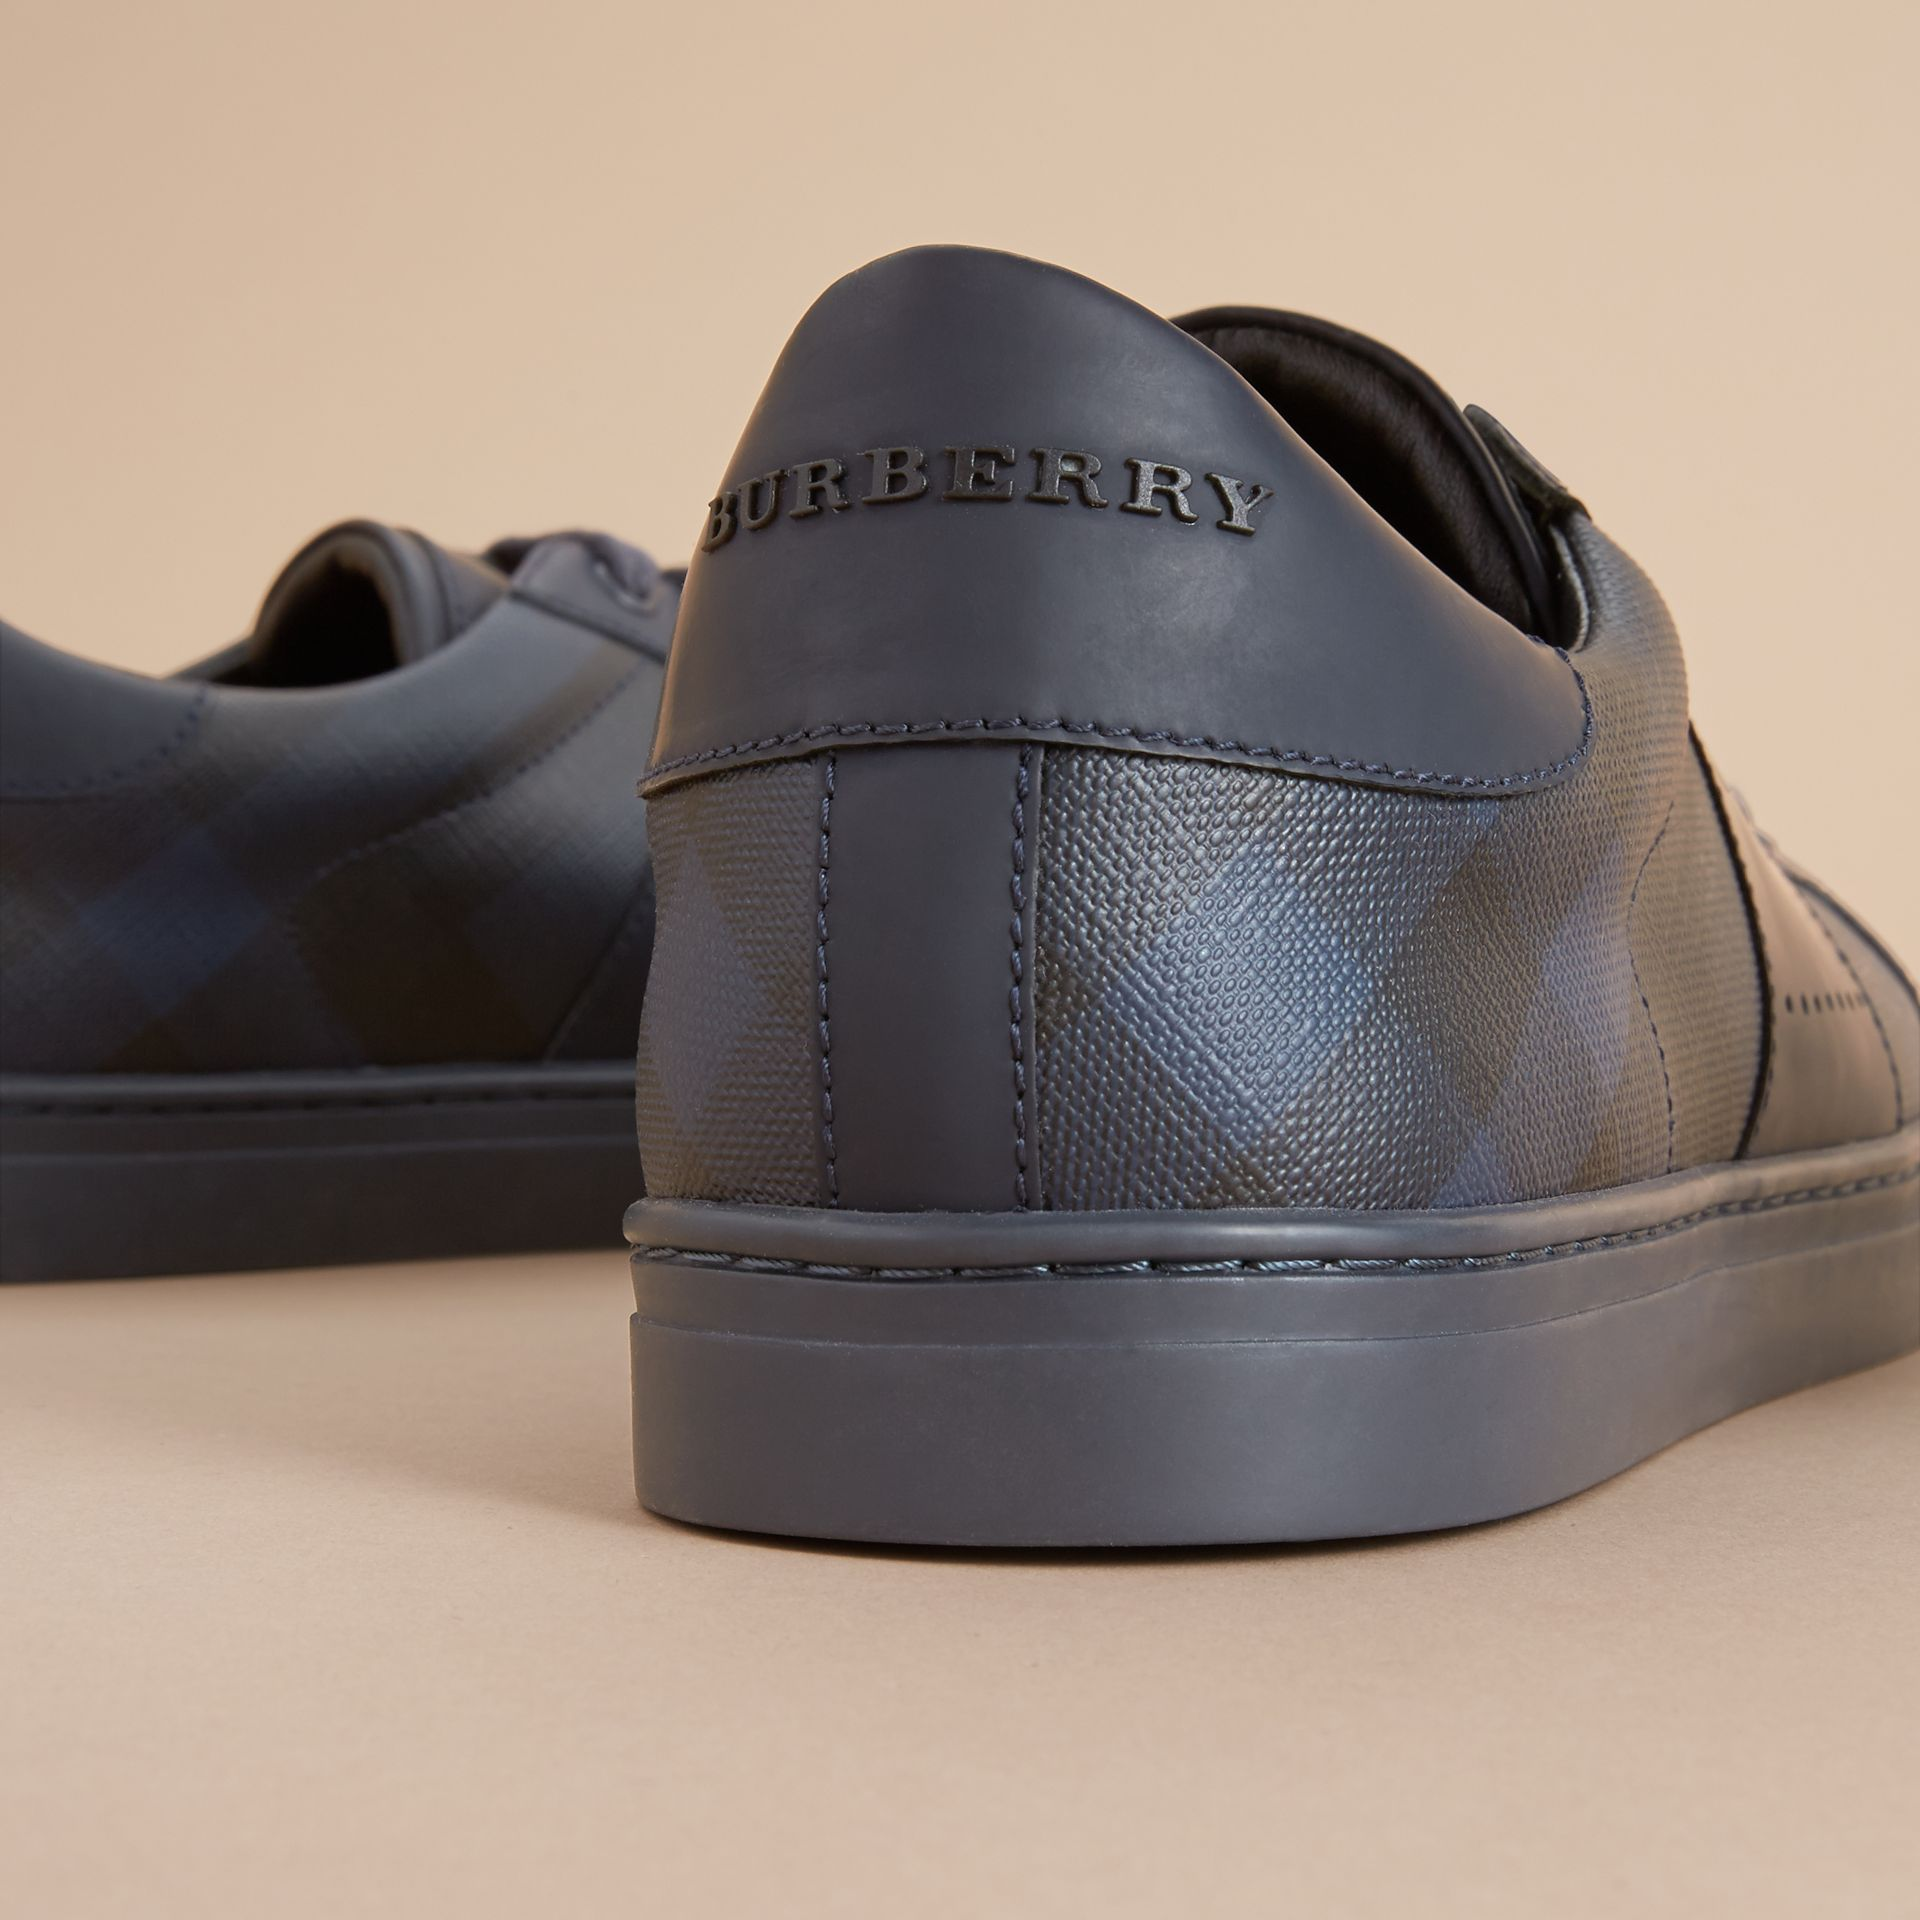 London Check and Leather Sneakers in Navy - Men | Burberry Australia - gallery image 1